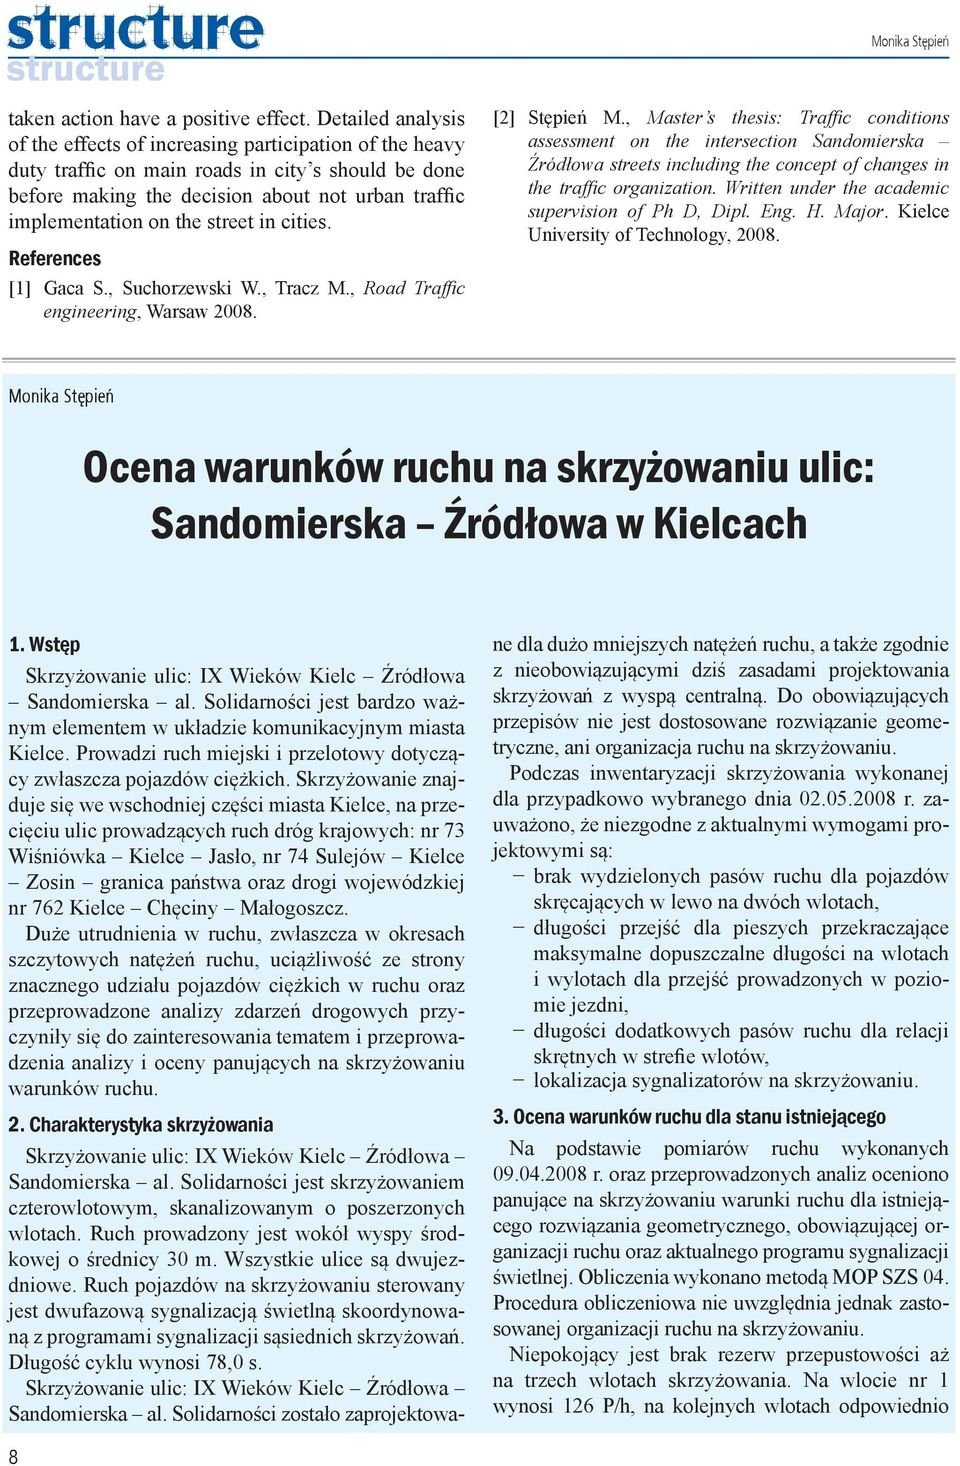 street in cities. References [1] Gaca S., Suchorzewski W., Tracz M., Road Traffic engineering, Warsaw 2008. [2] Stępień M.